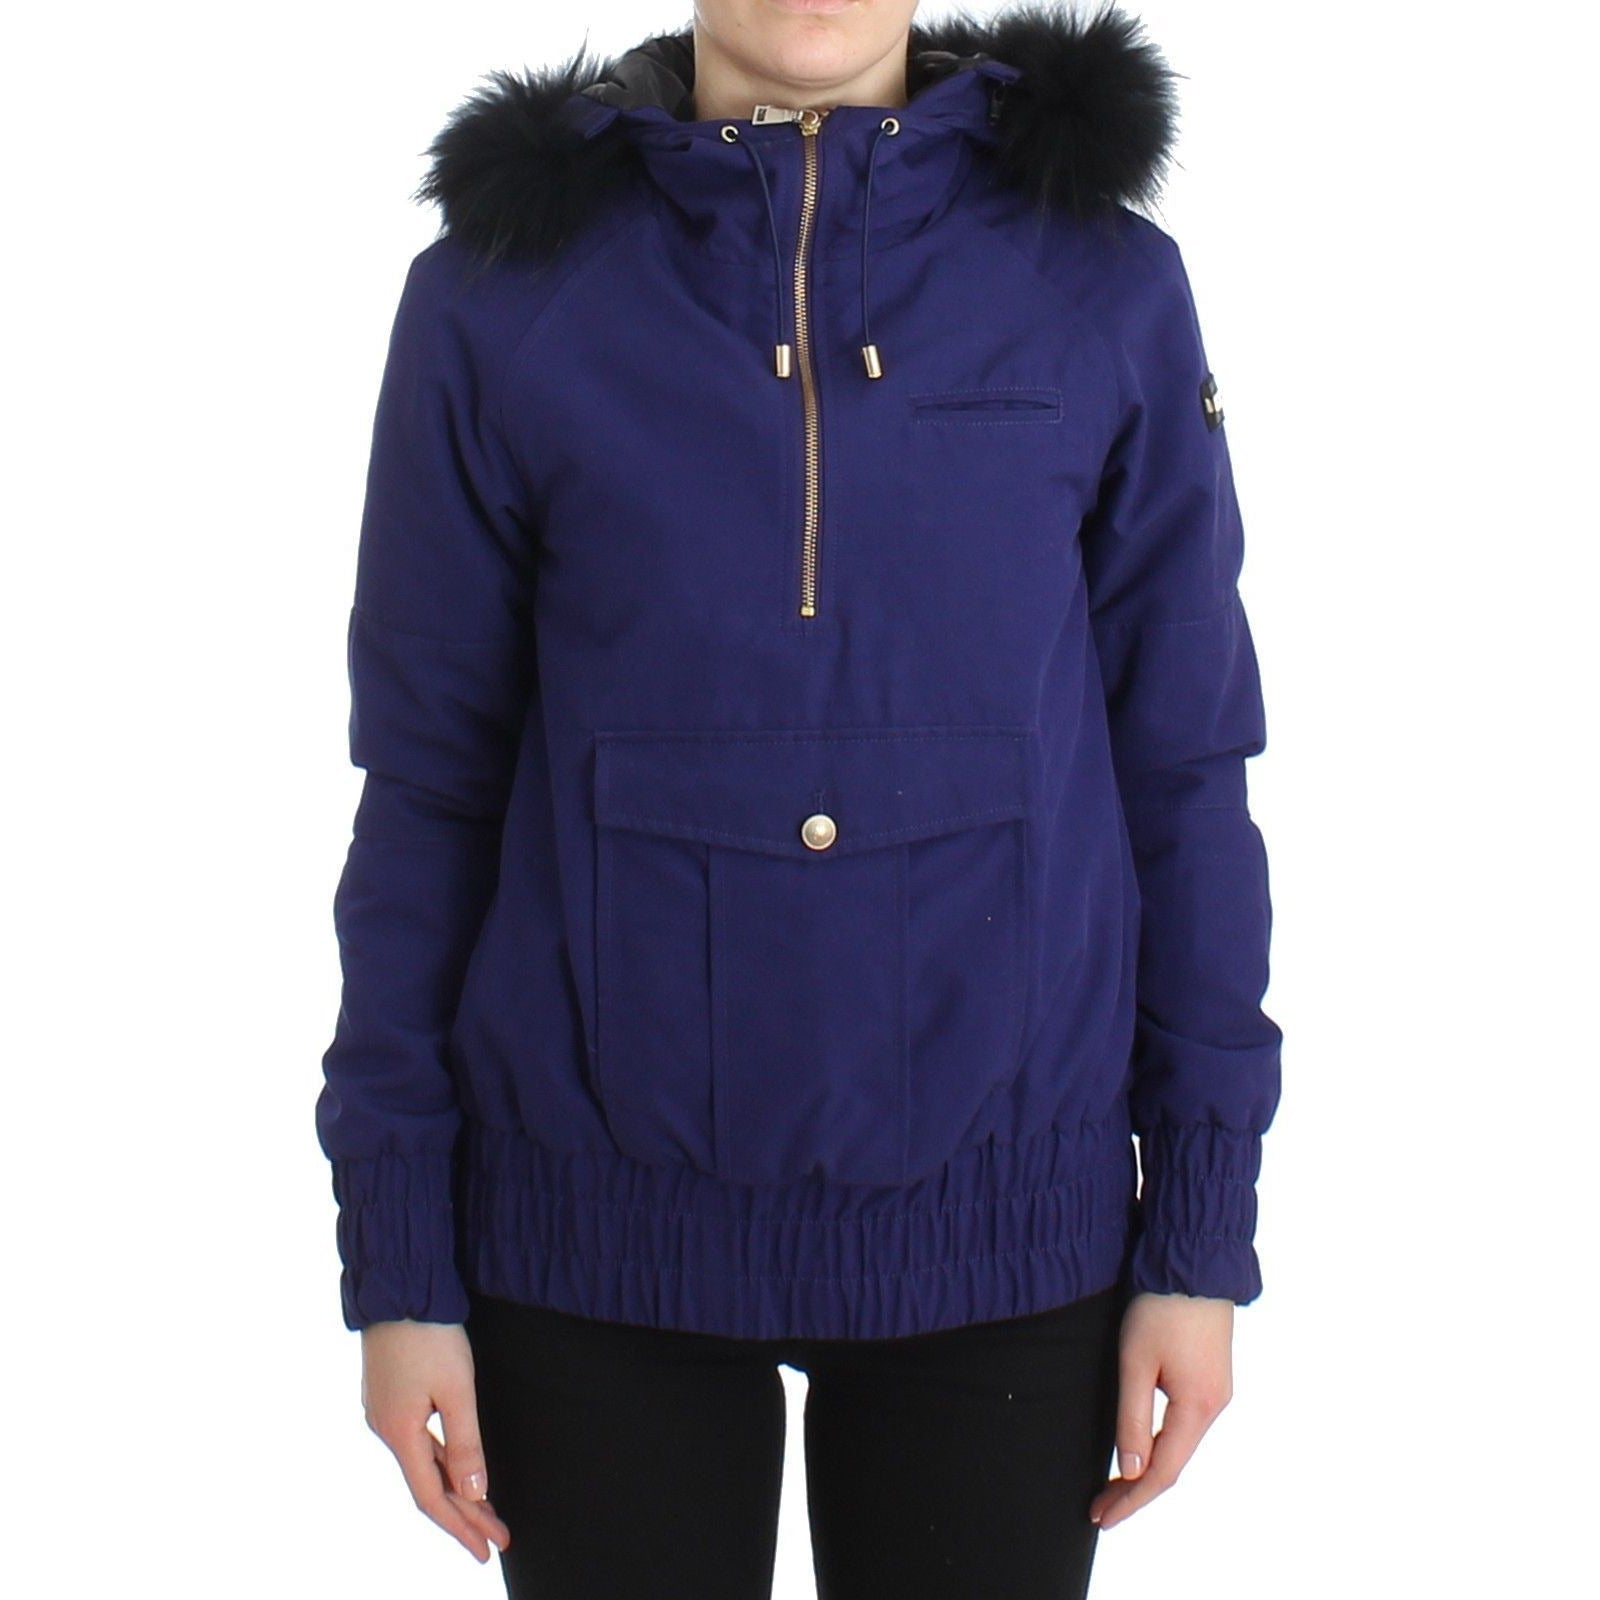 Blue Padded Jacket Hooded Short K-Way GF Ferre